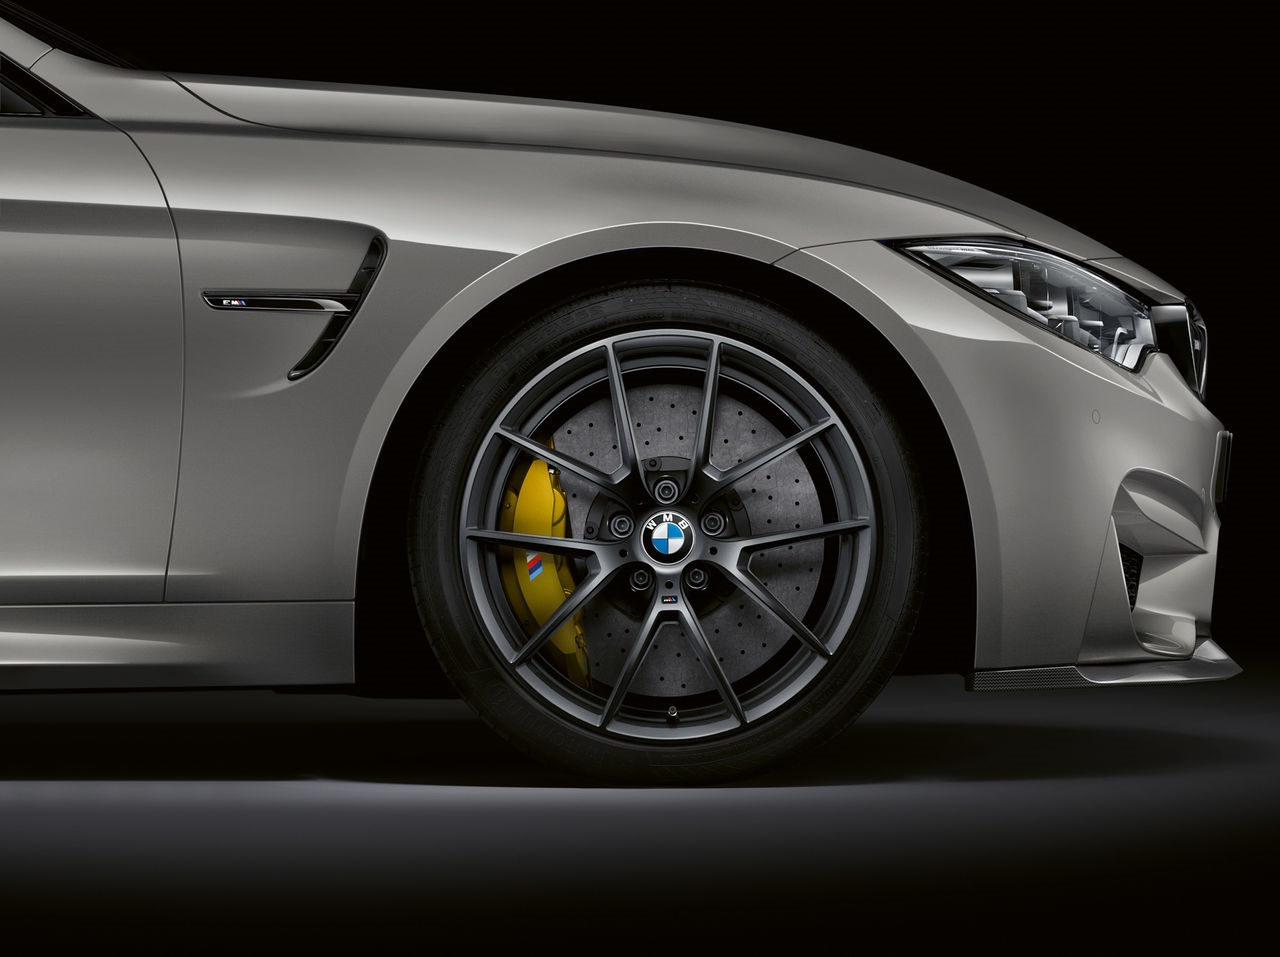 BMW M3 CS wheels